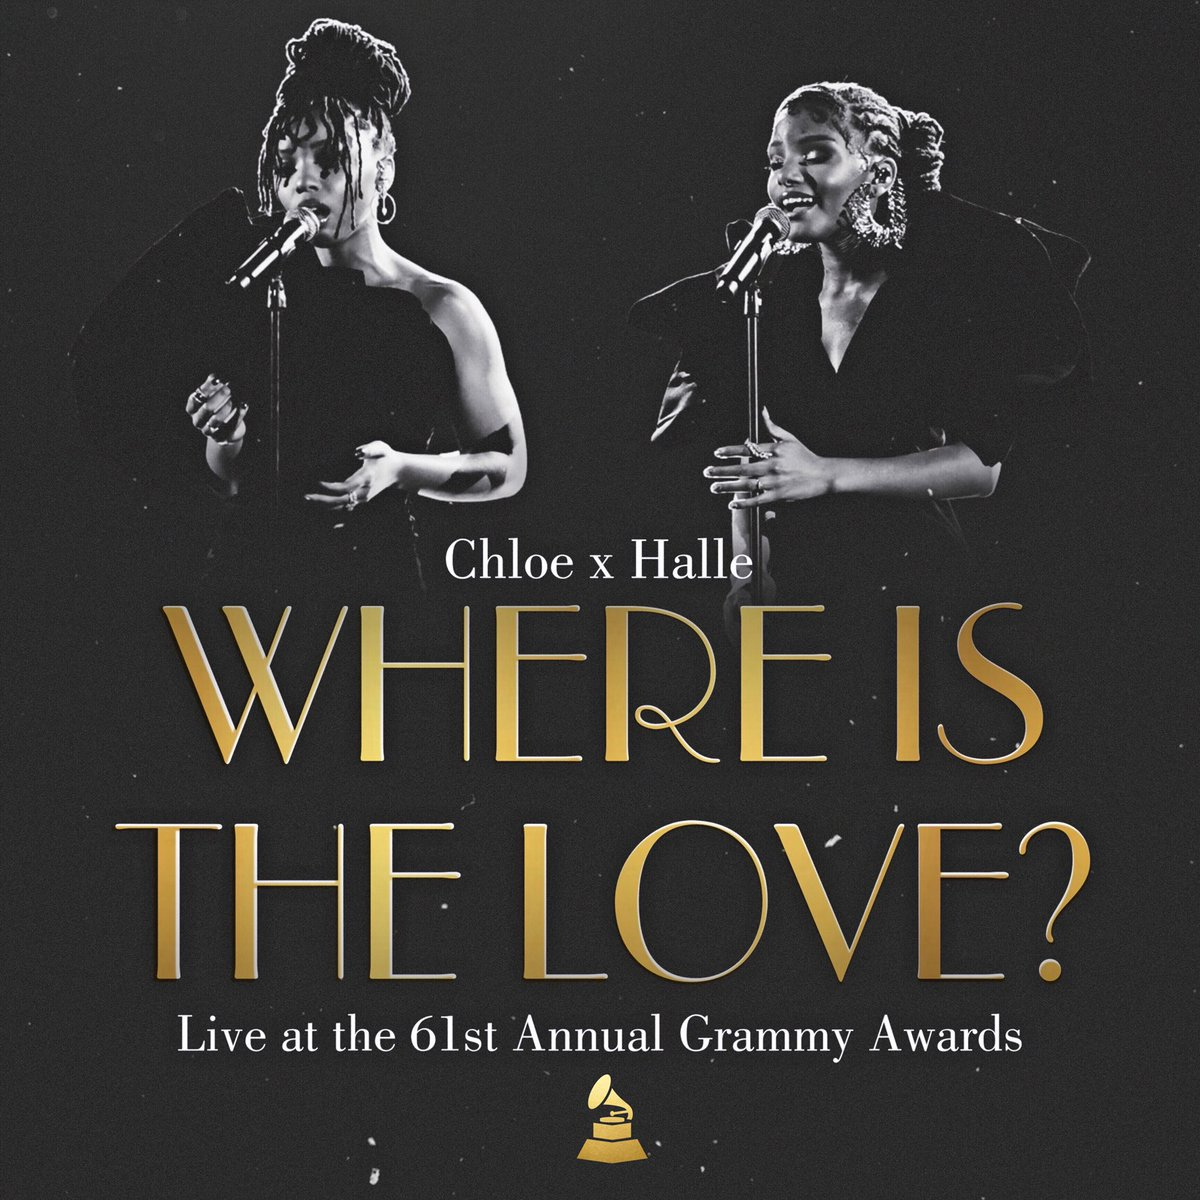 FINALLY!! Where Is The Love? (Live at the 61st Annual Grammy Awards) is available now!! :   https:// drive.google.com/file/d/1-Hh0g9 UuHwgE3w9R16a1pj1QeXoLceTG/view?usp=drivesdk &nbsp; … <br>http://pic.twitter.com/WVXrfgmpd1